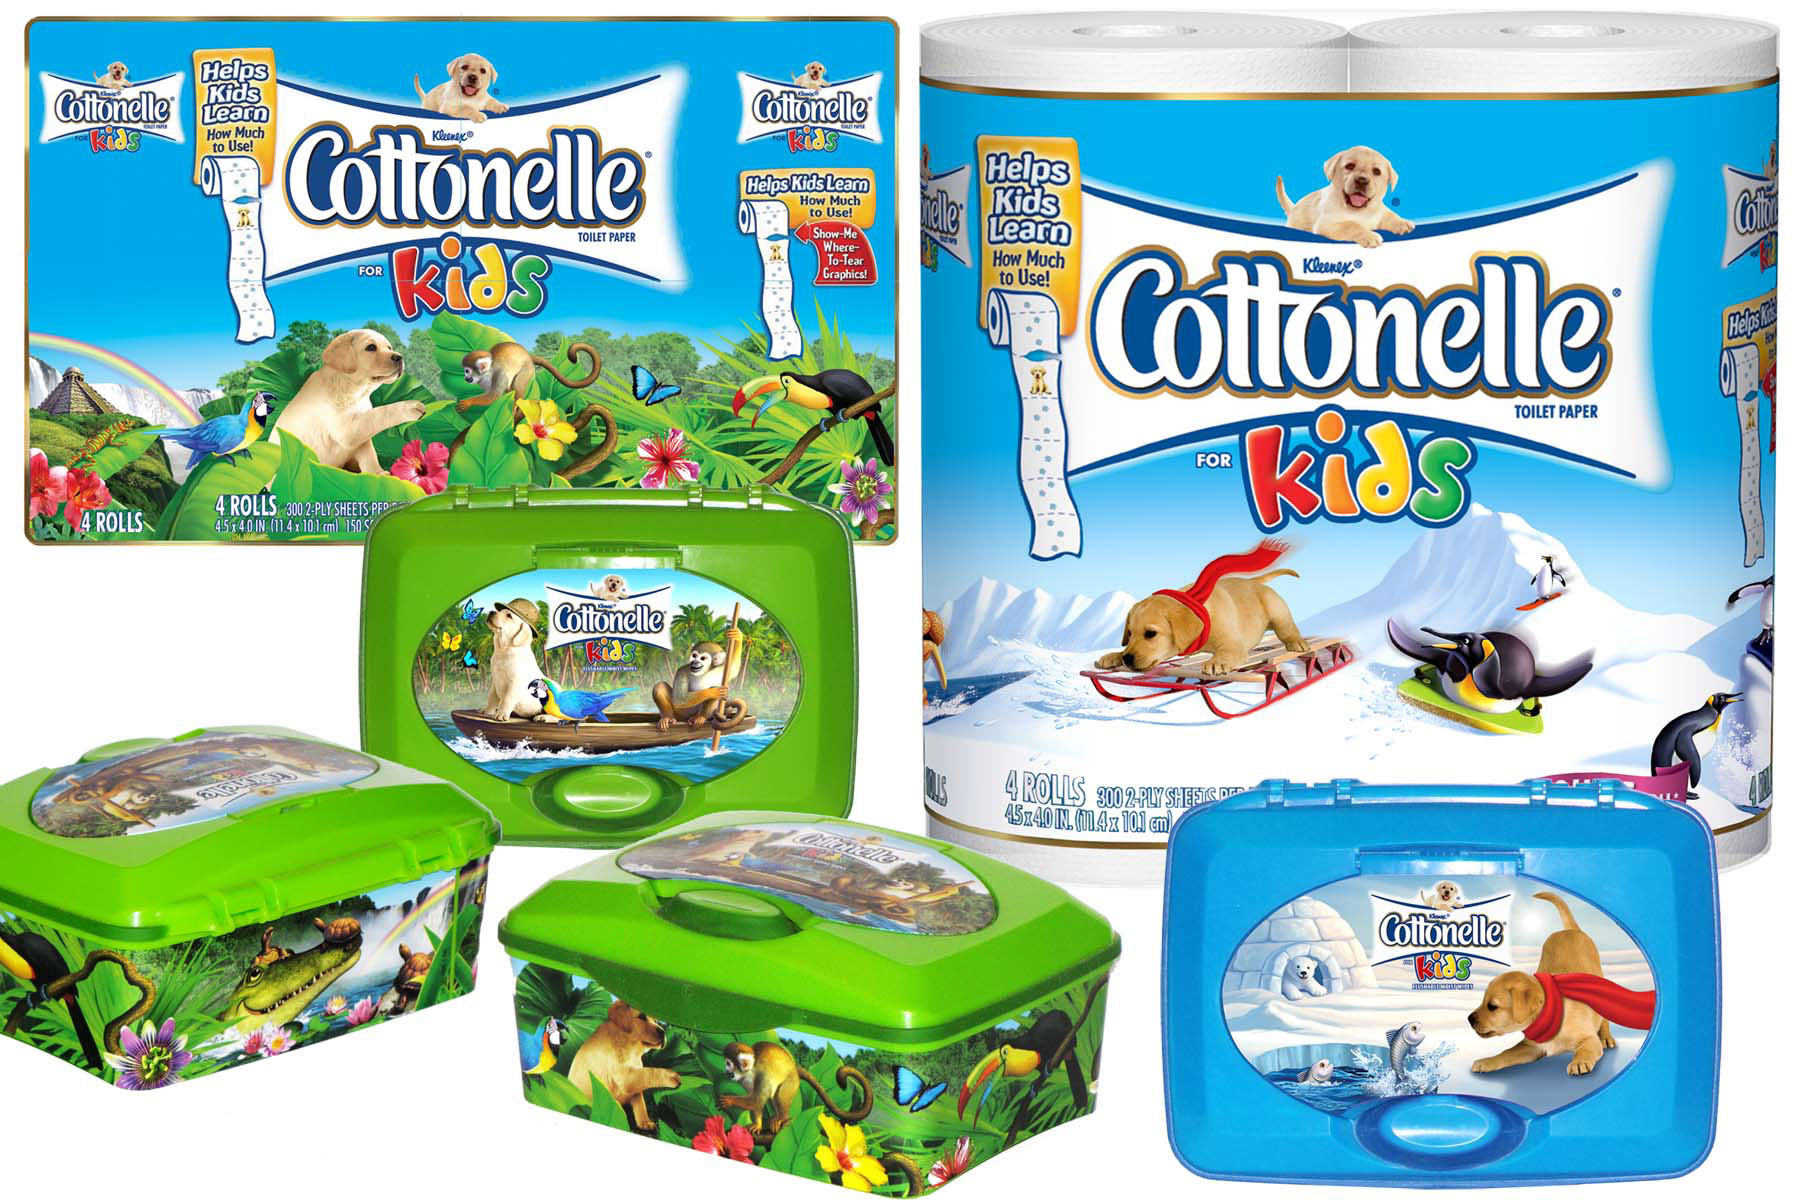 illustration-Photo-Imaging_Products and Still Life_Cottonele wipes-Jerry LoFaro